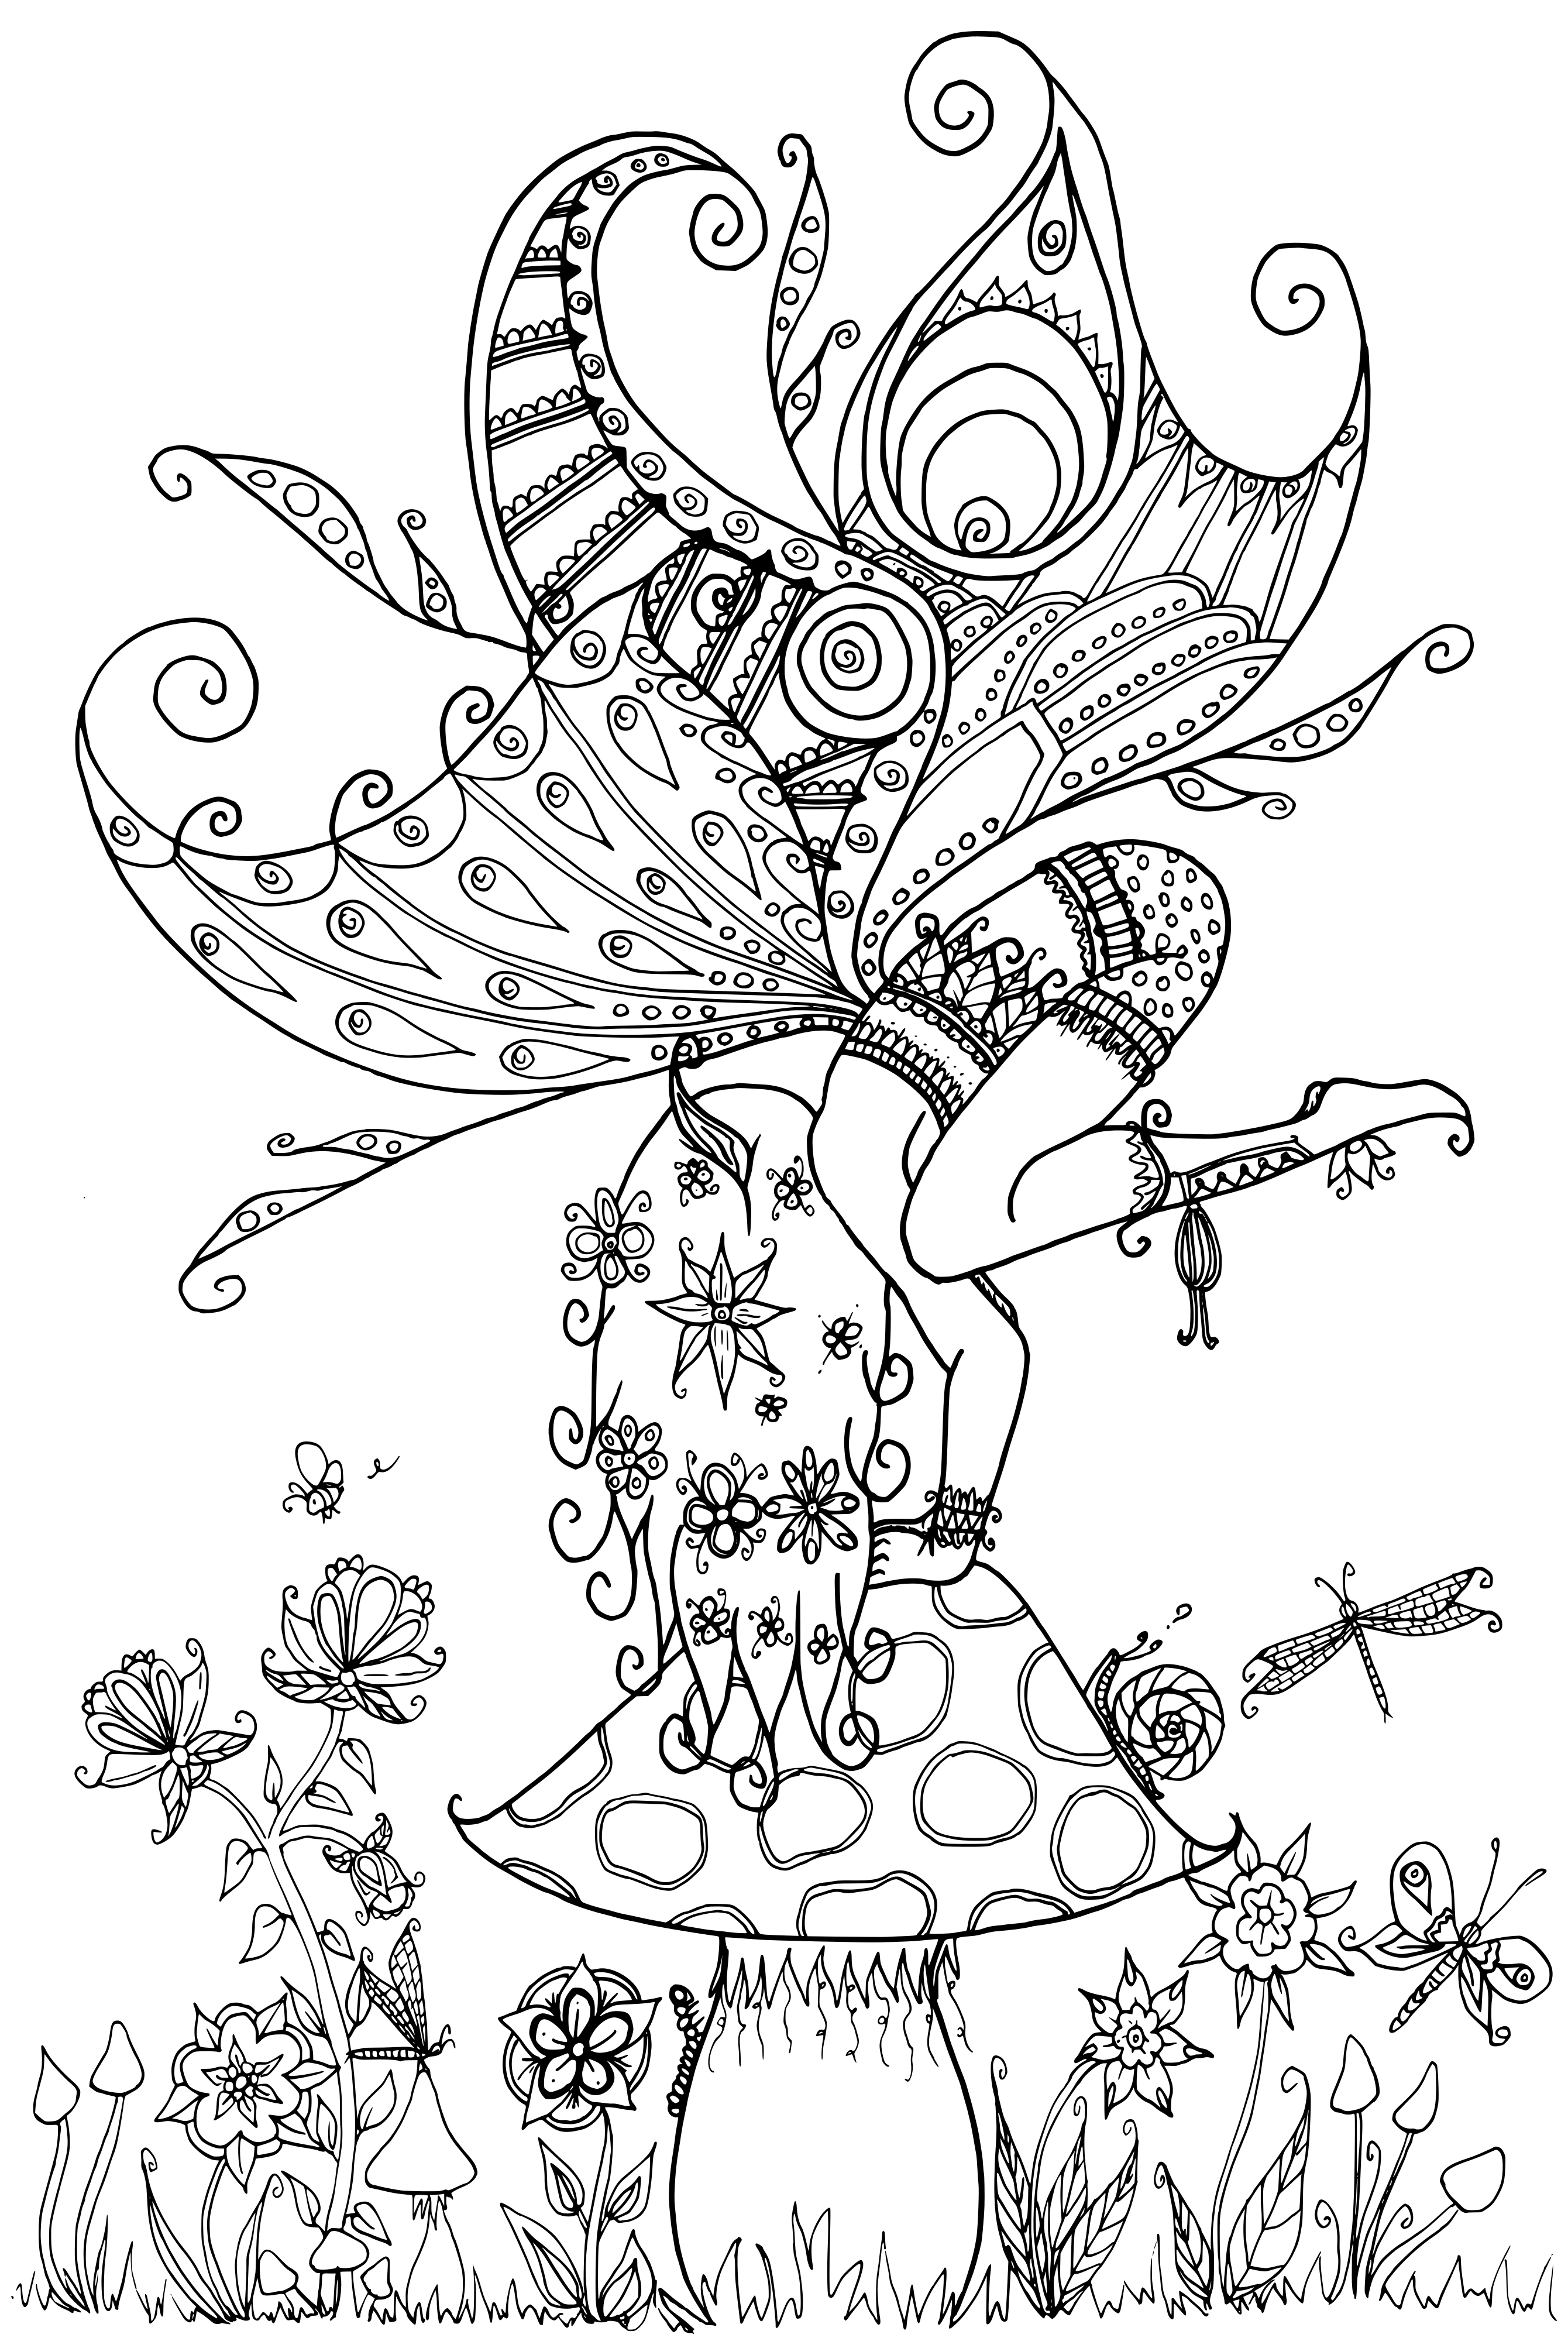 coloring pages of fairies and pixies amy brown fairies coloring pages fairy coloring pages coloring and fairies pixies of pages